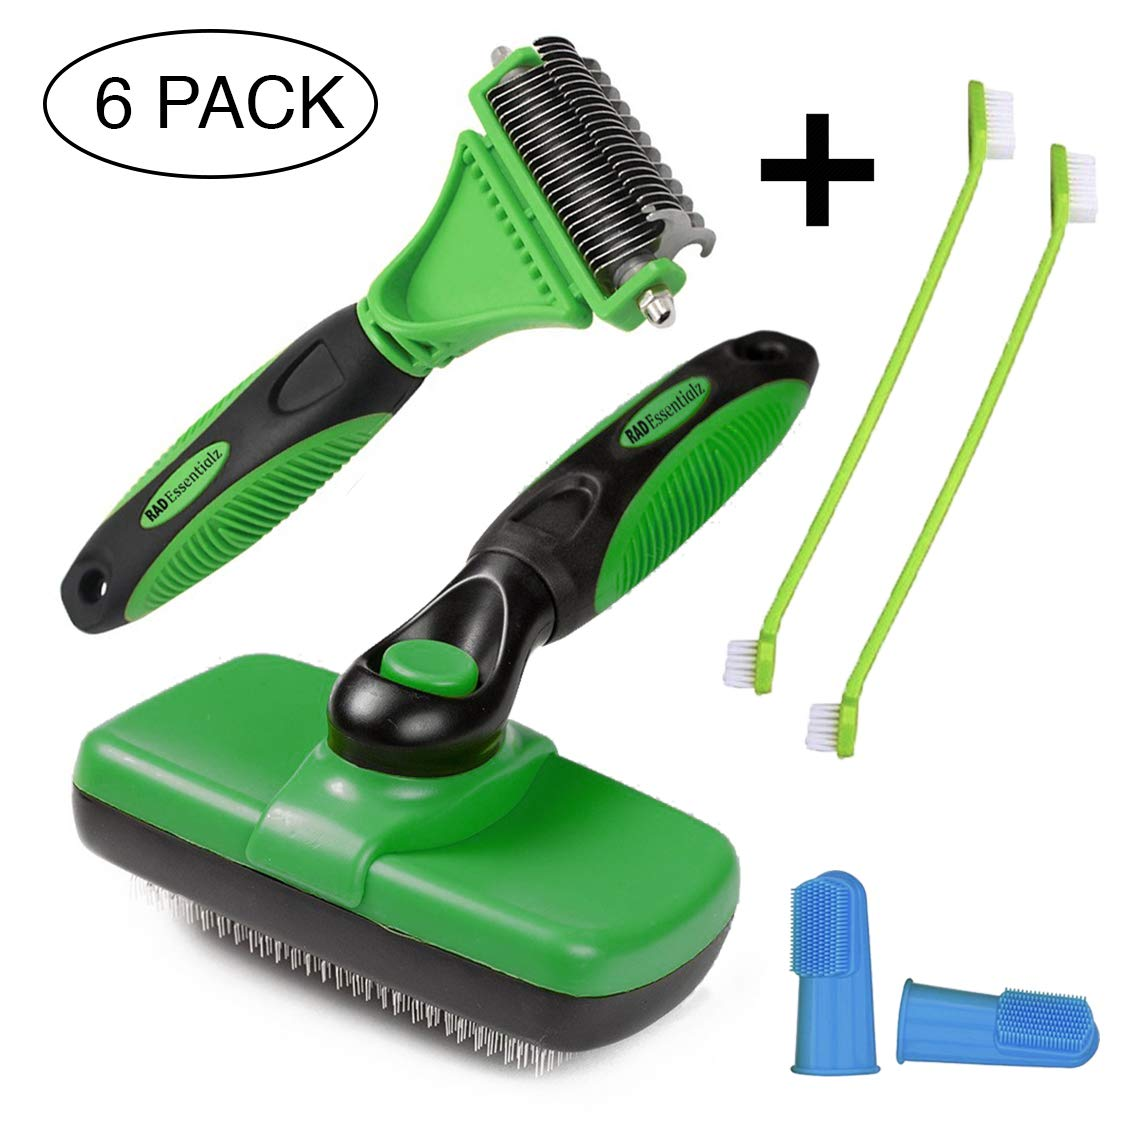 Rad Essentialz Slicker Brush and 2 Sided Undercoat Rake for Dogs & Cats - Pet Grooming Tool - Safe Dematting Comb to Remove Tangles & Mats - Gently Remove Loose Undercoat by Rad Essentialz (Image #1)